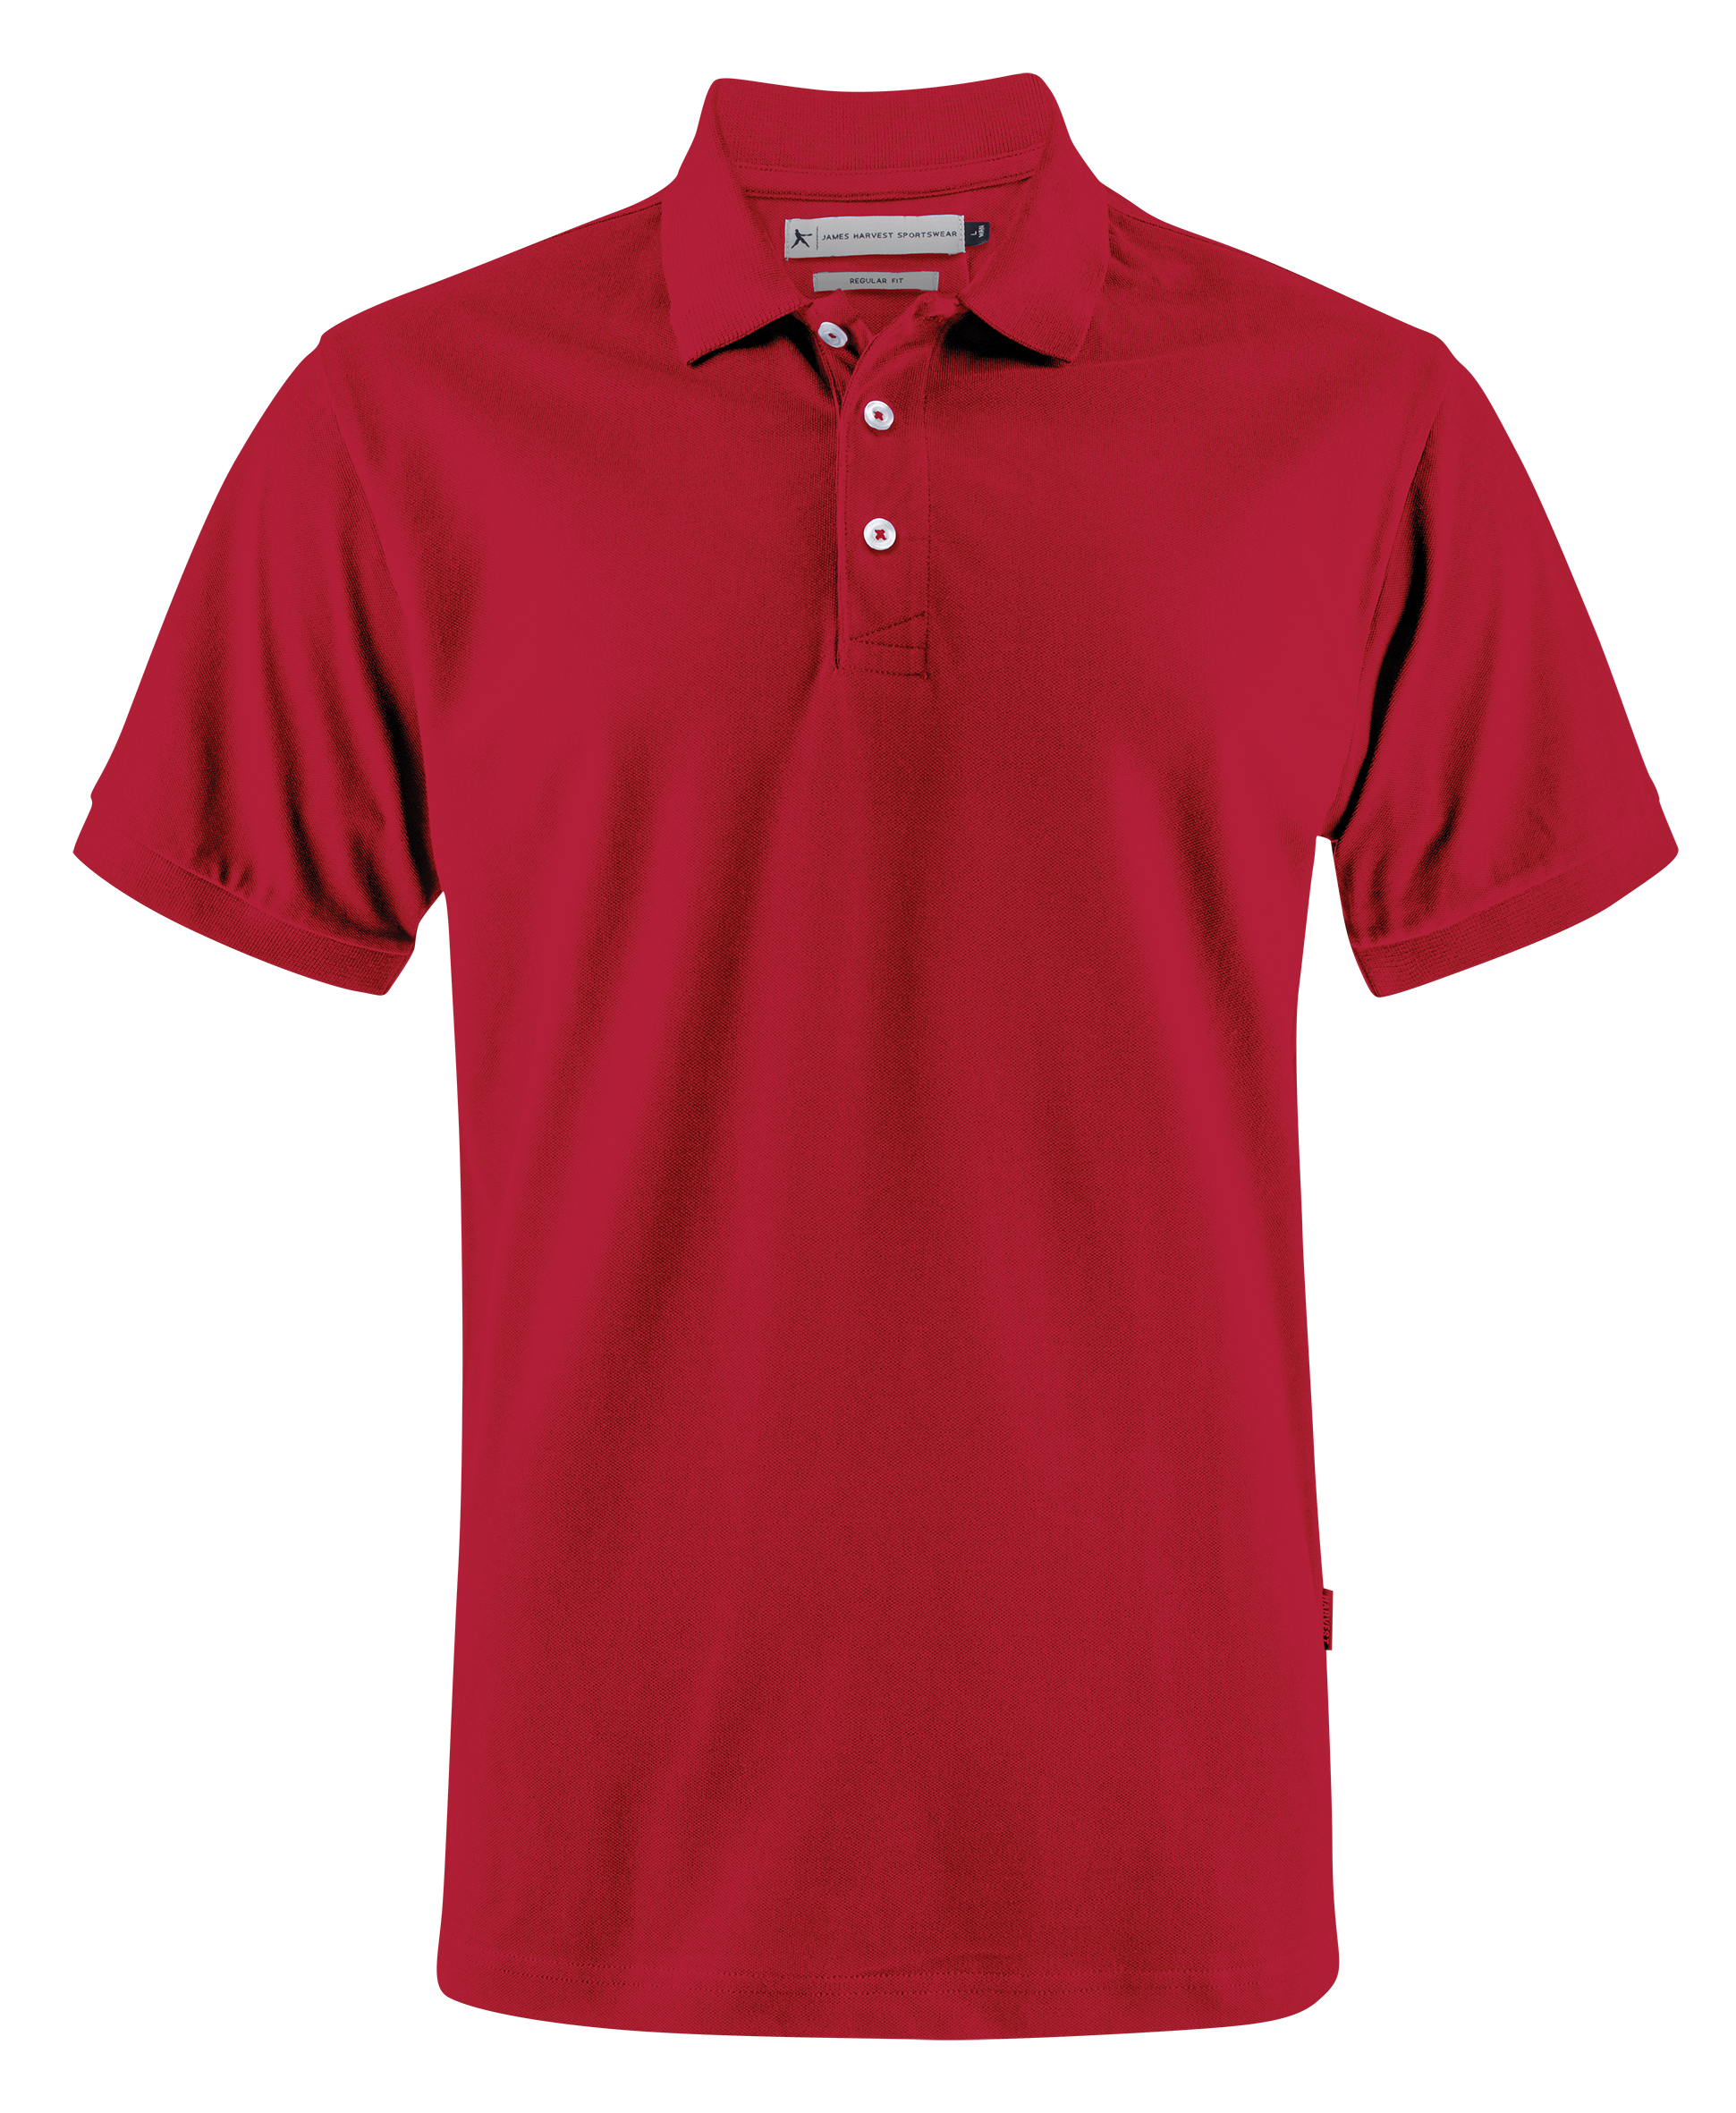 Sunset Modern Polo in Red